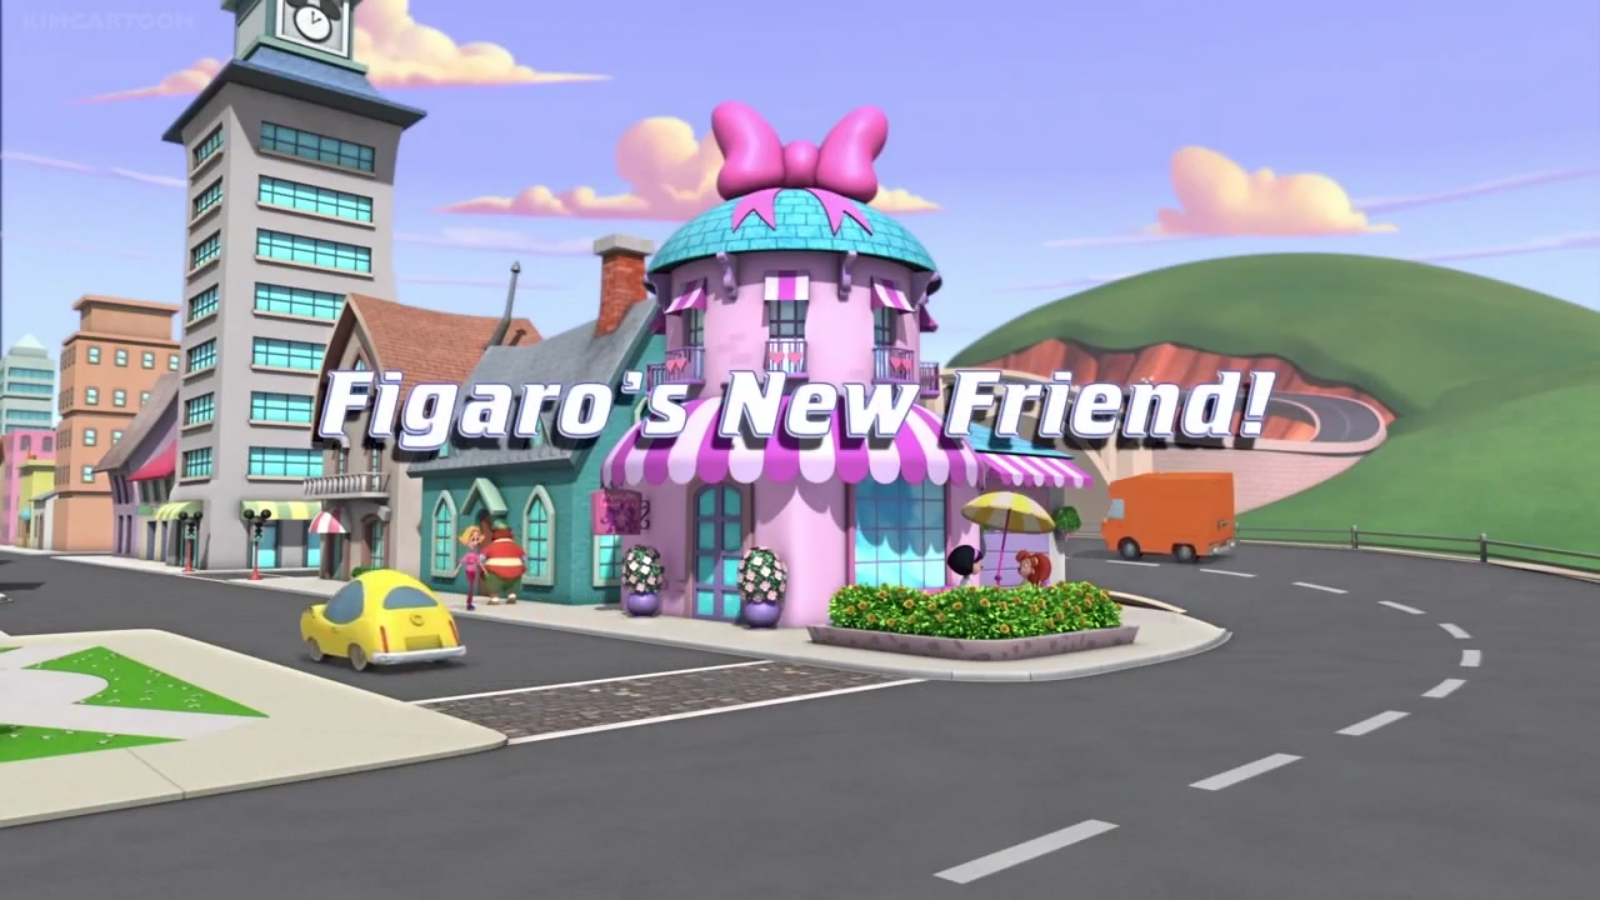 Figaro's New Friend!